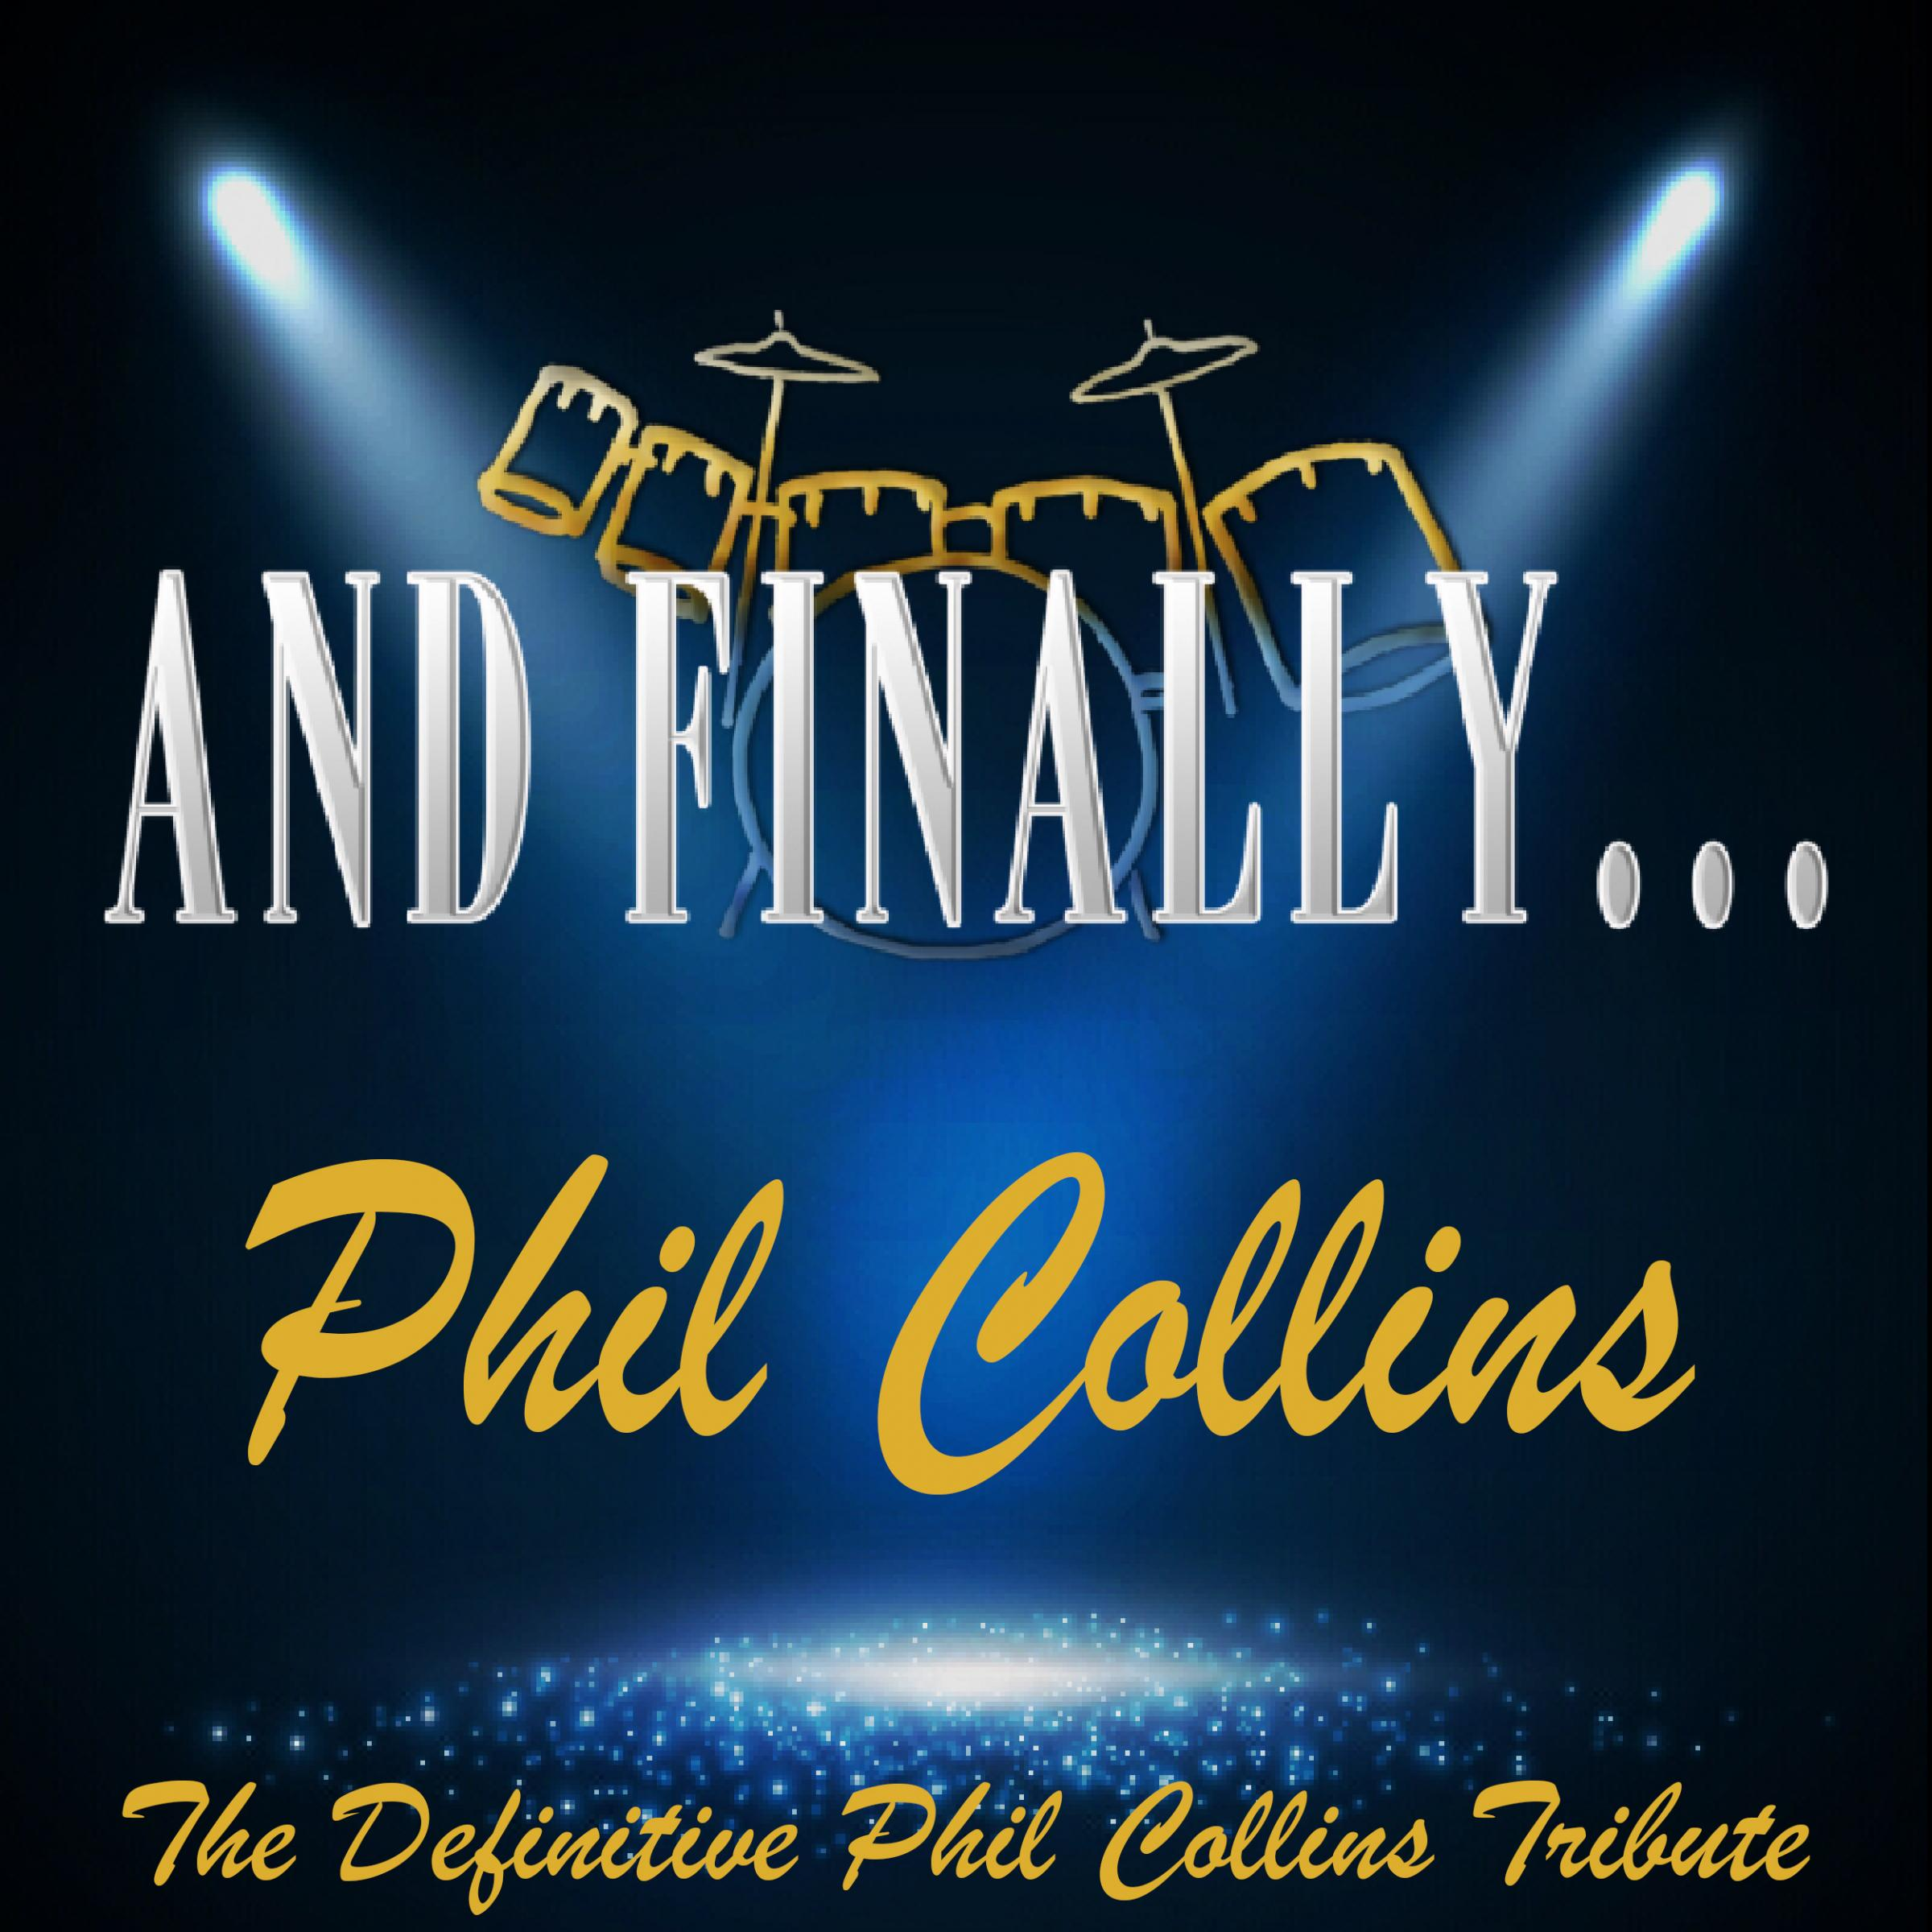 And Finally ... Phil Collins